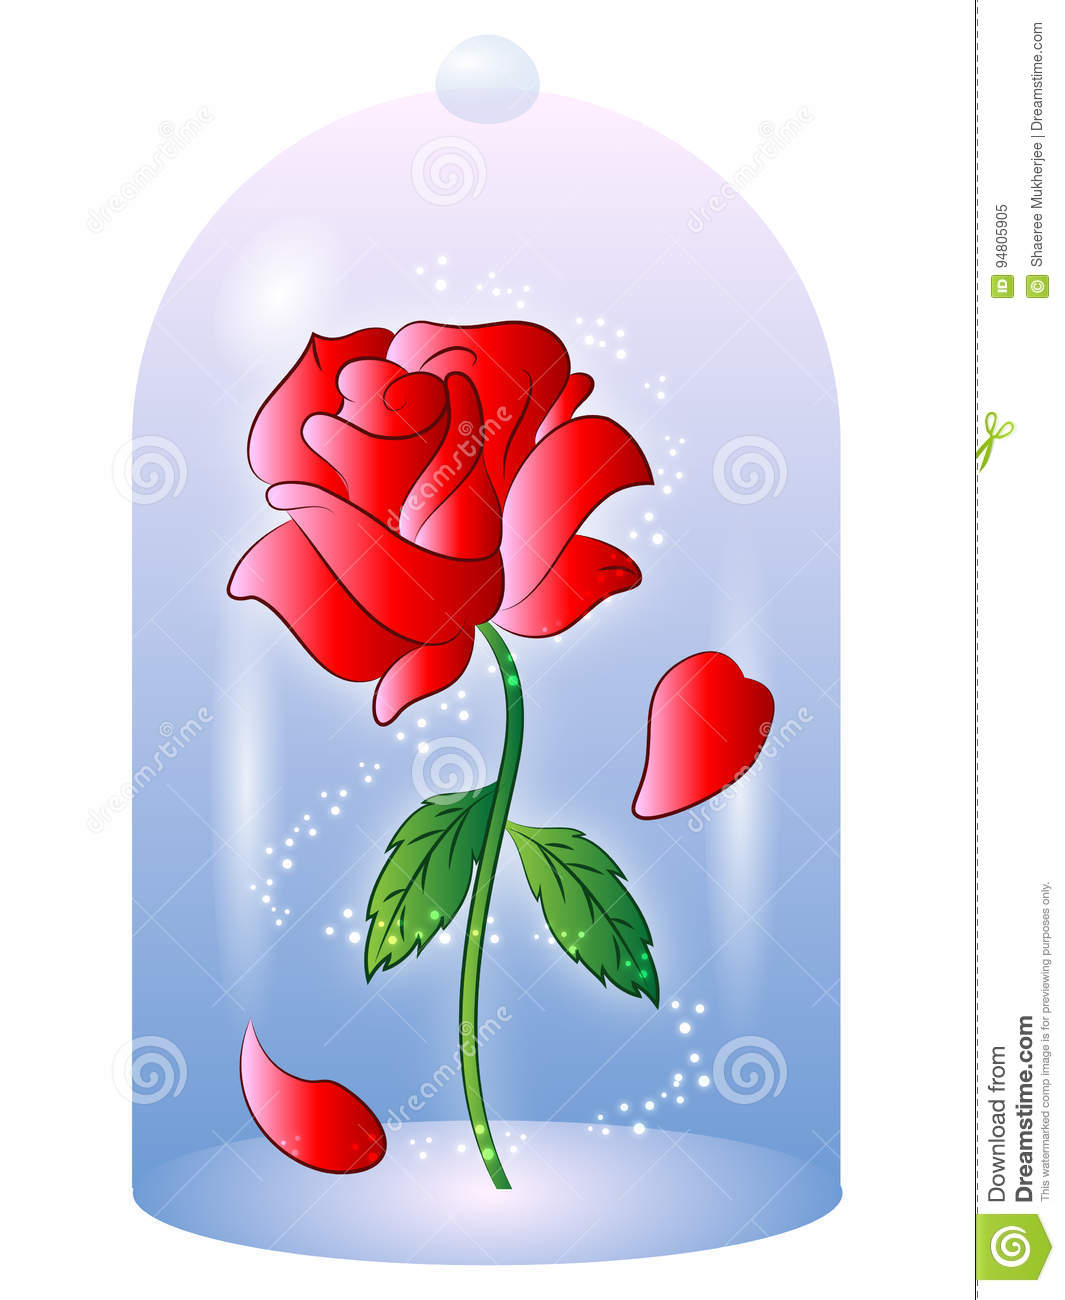 Rose From Beauty And The Beast Vector Illustration Stock Vector.